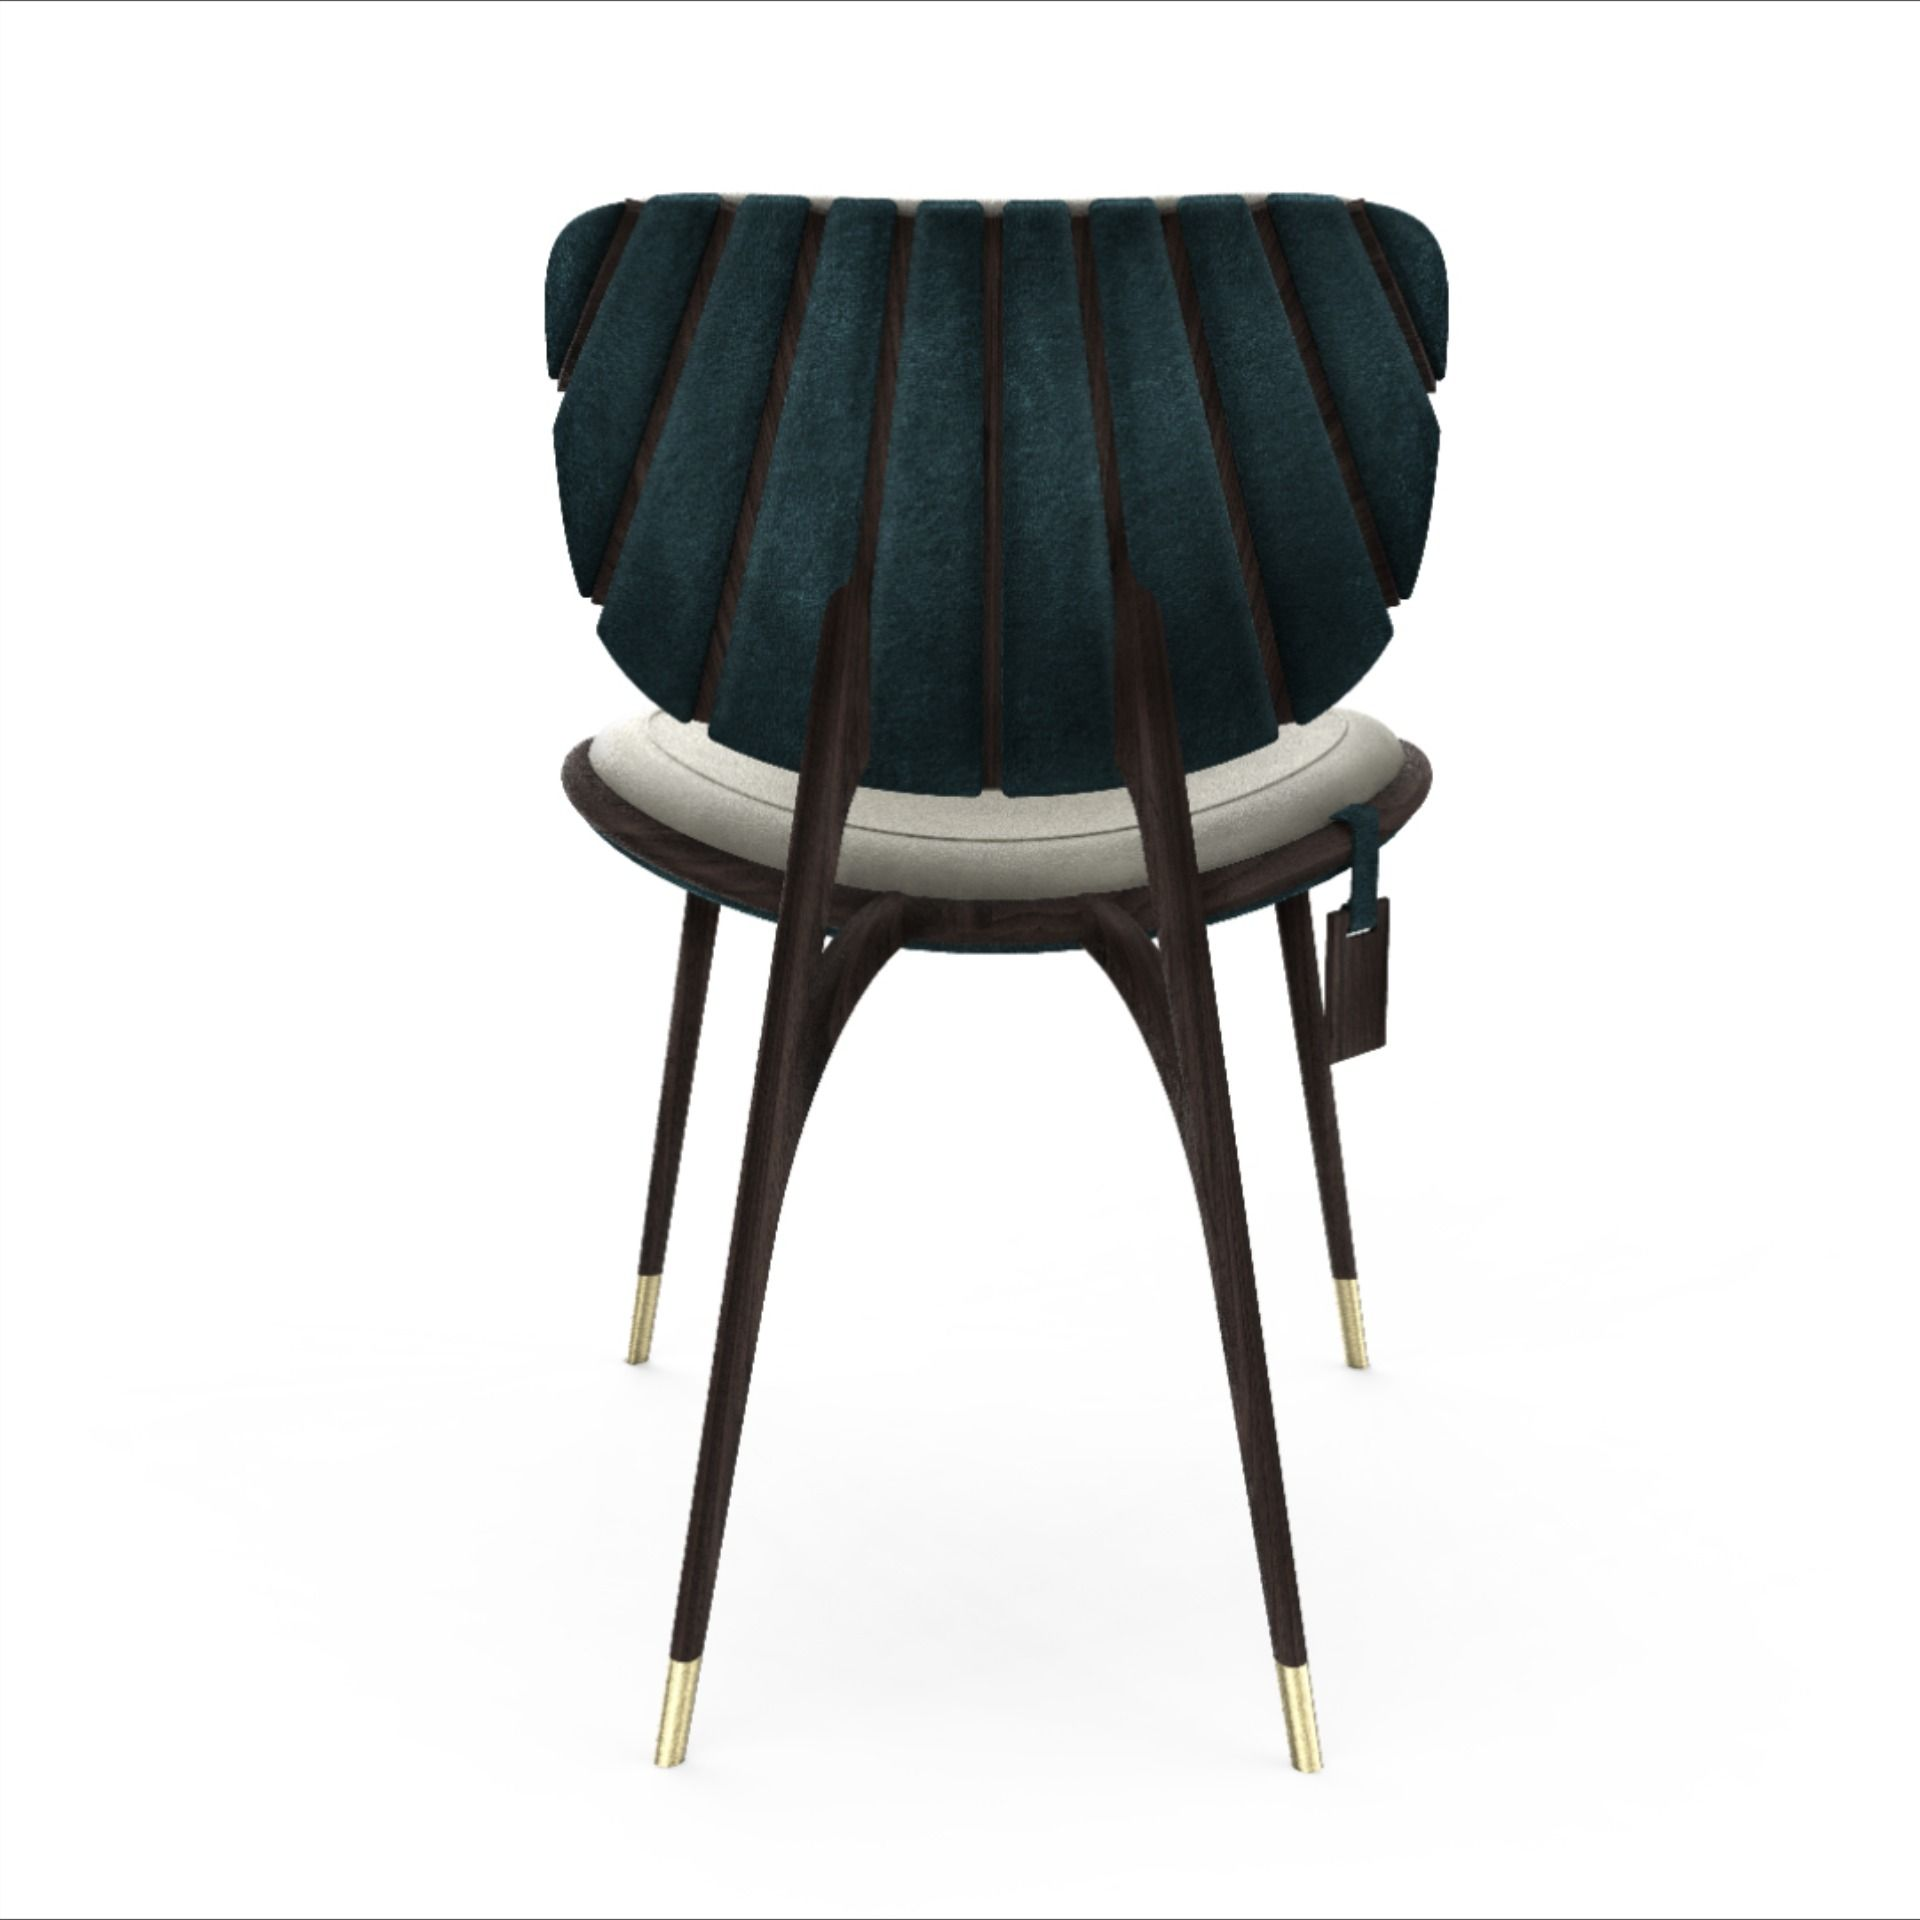 10 Modern Chairs Is The Ultimate Source For Dining Chairs And